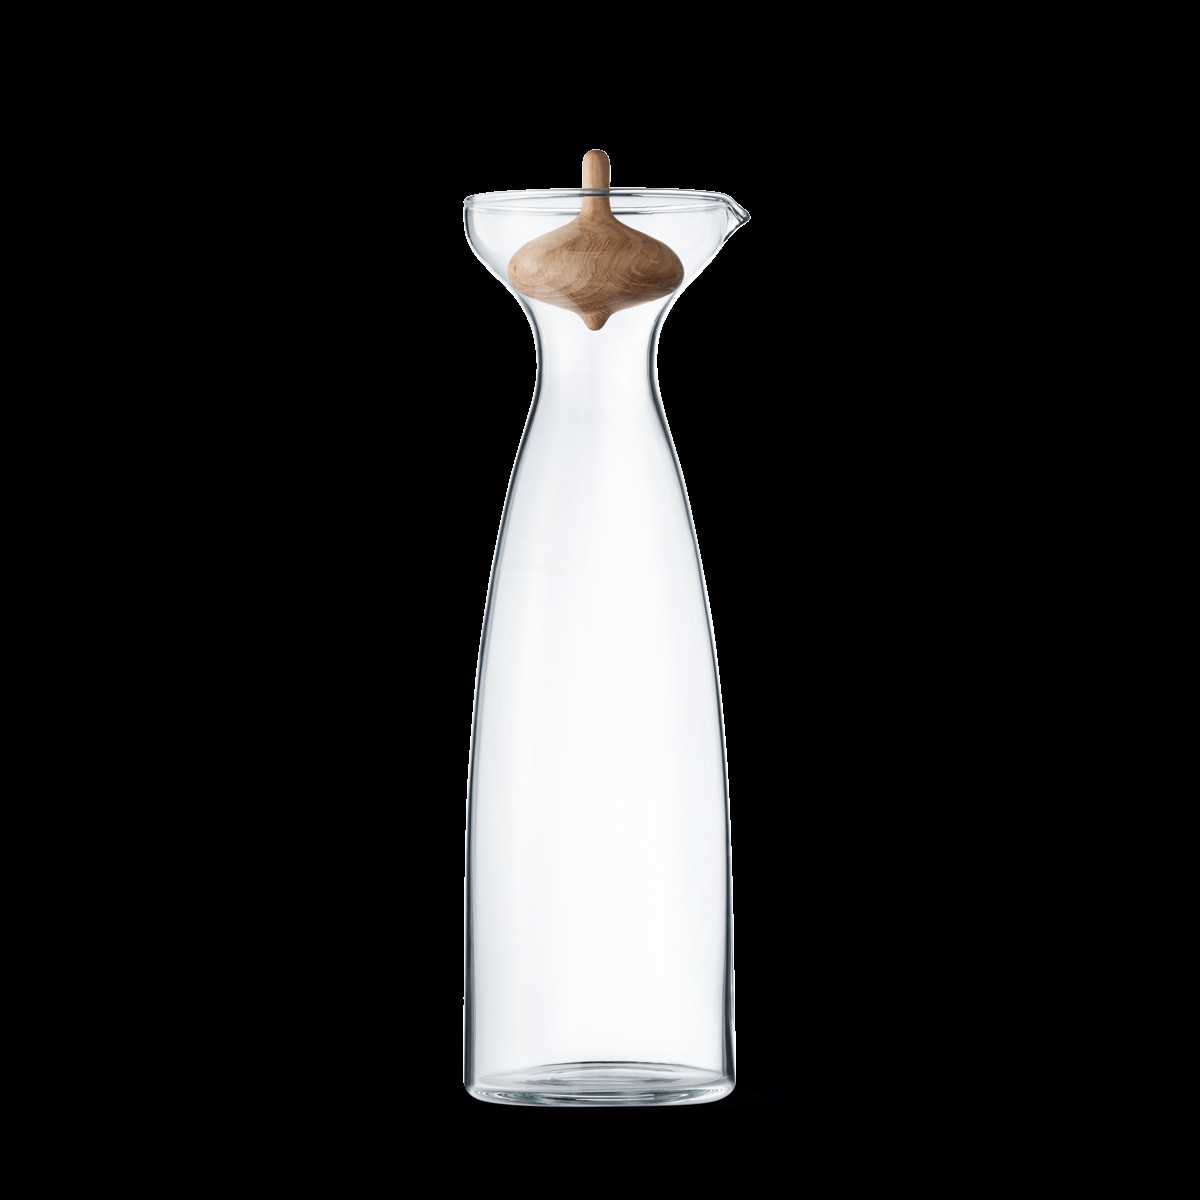 Georg Jensen Alfredo Vase Of Alfredo Carafe 1l In Glass with Carved Oak Stopper Georg Jensen Throughout Pack 3586205 1200 0